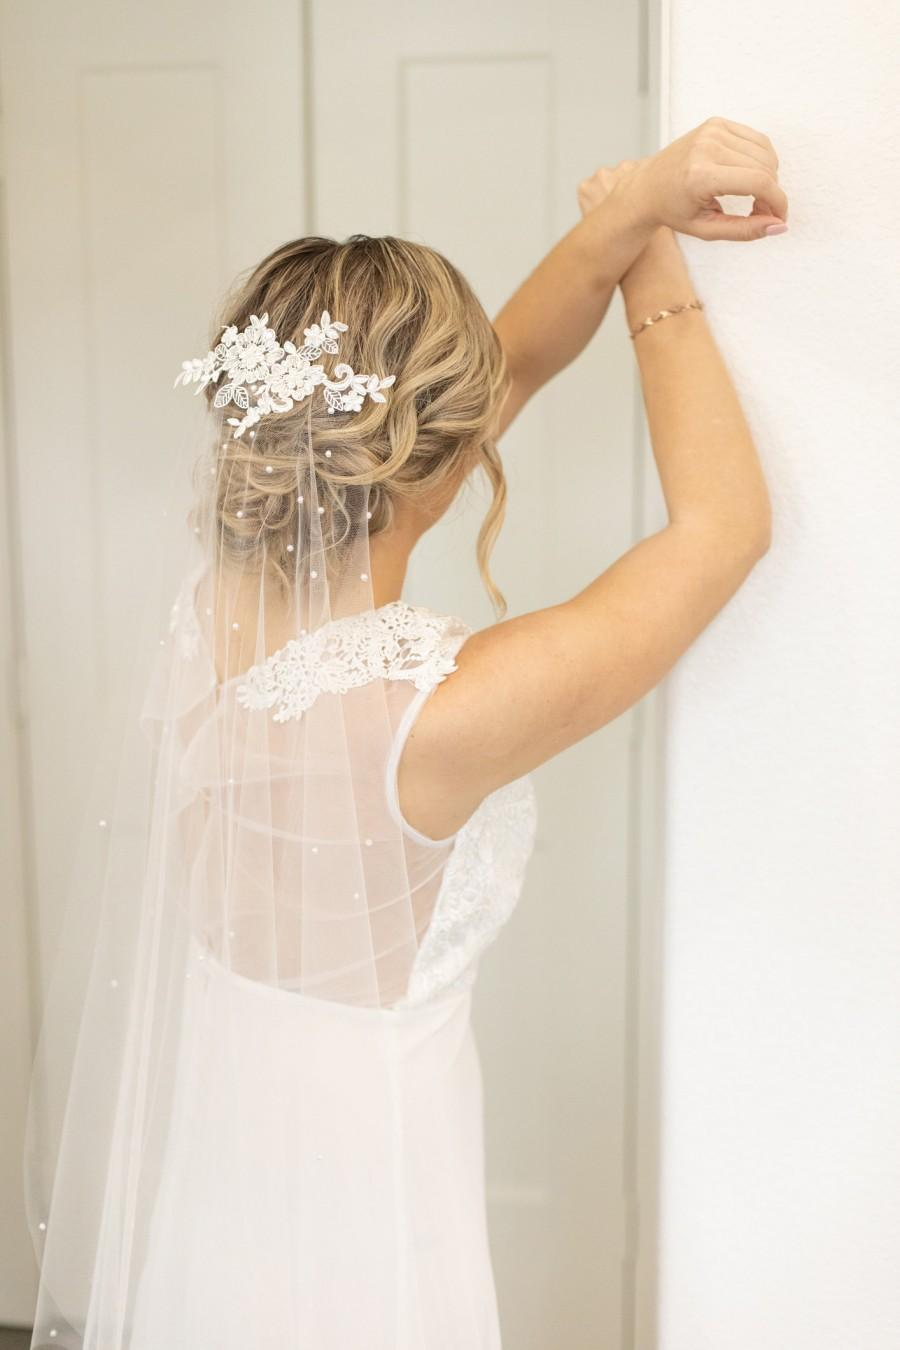 Hochzeit - Lace Appliqué Veil with Pearls